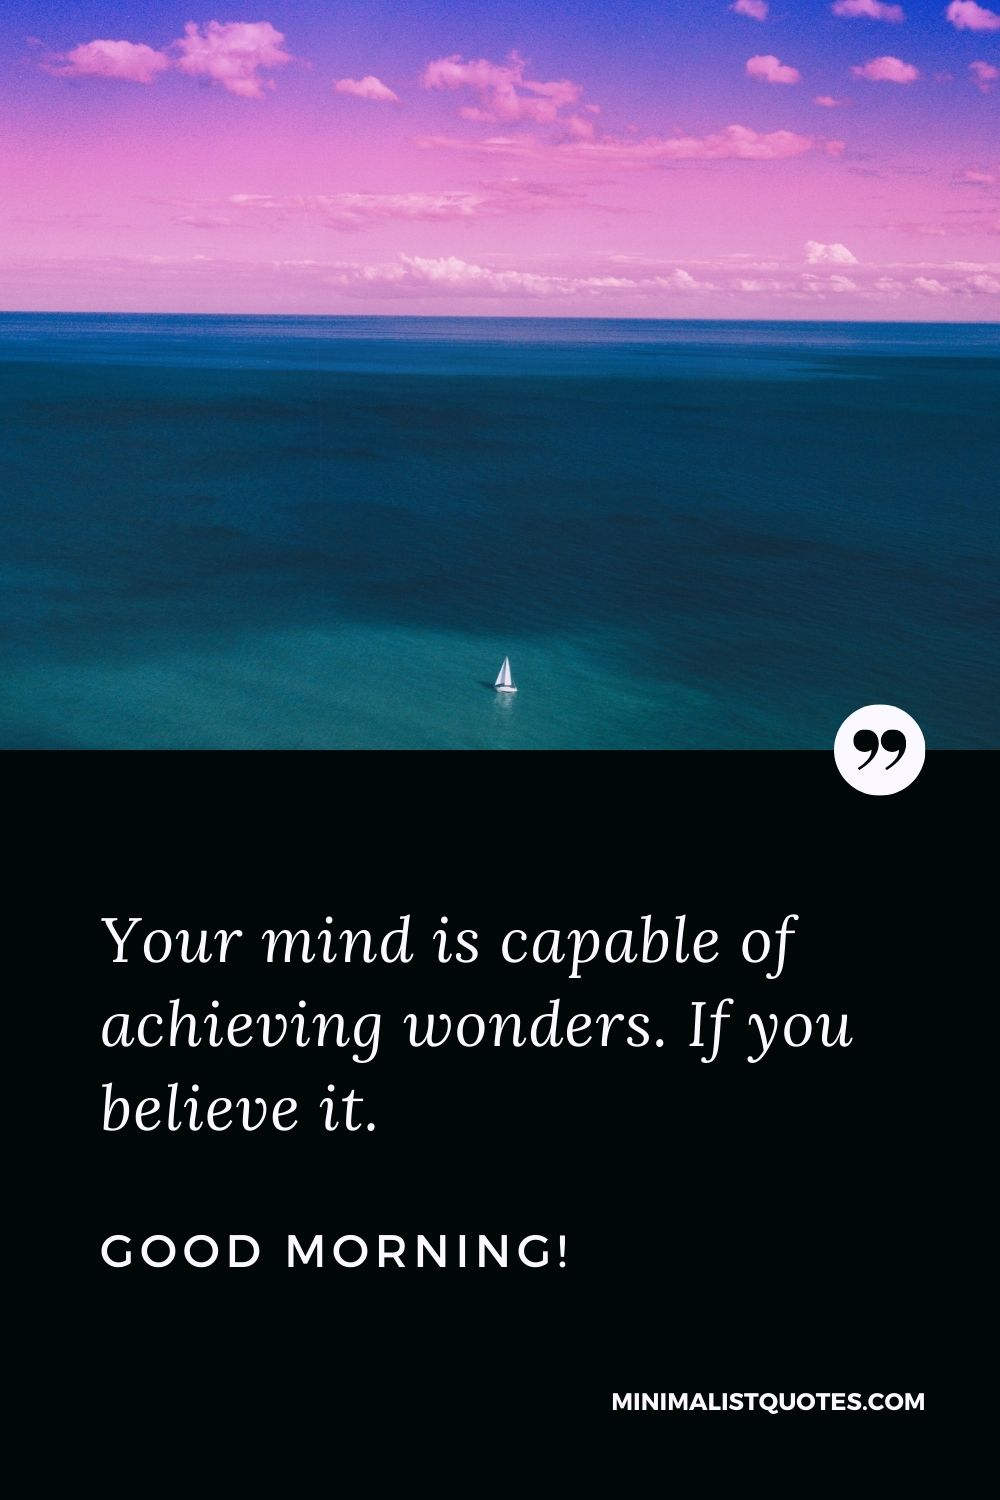 Inspirational Good Morning Message: Your mind is capable of achieving wonders. If you believe it. Good Morning!